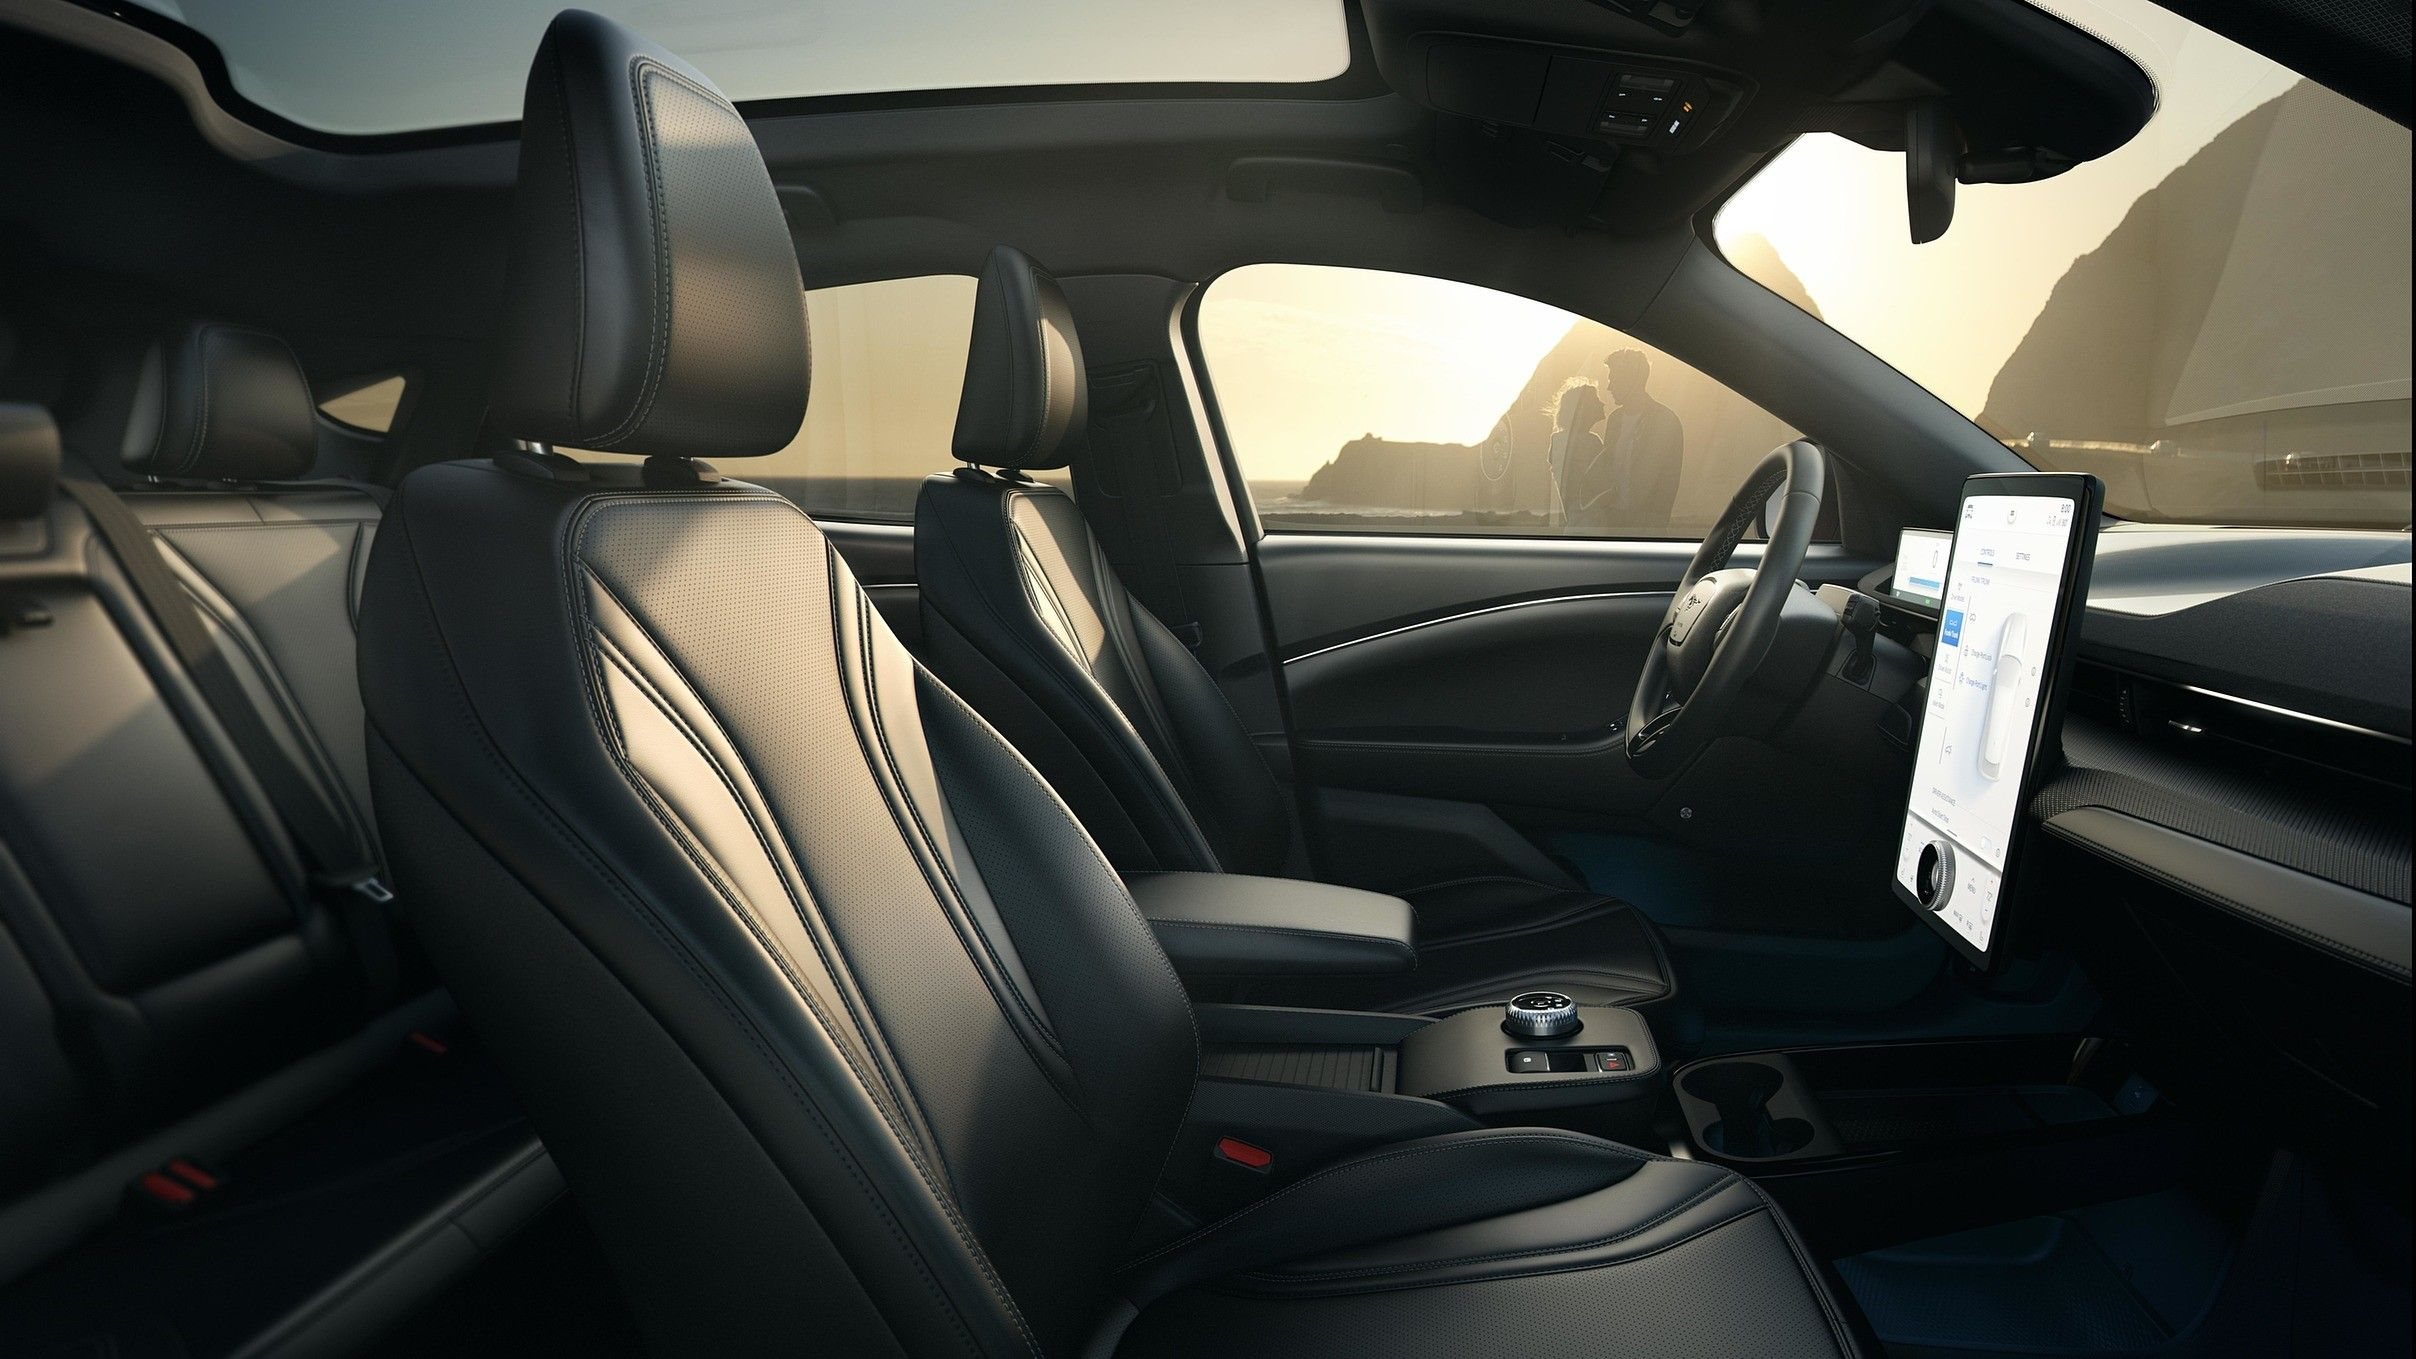 2021 ford mustang mach e interior seating 1